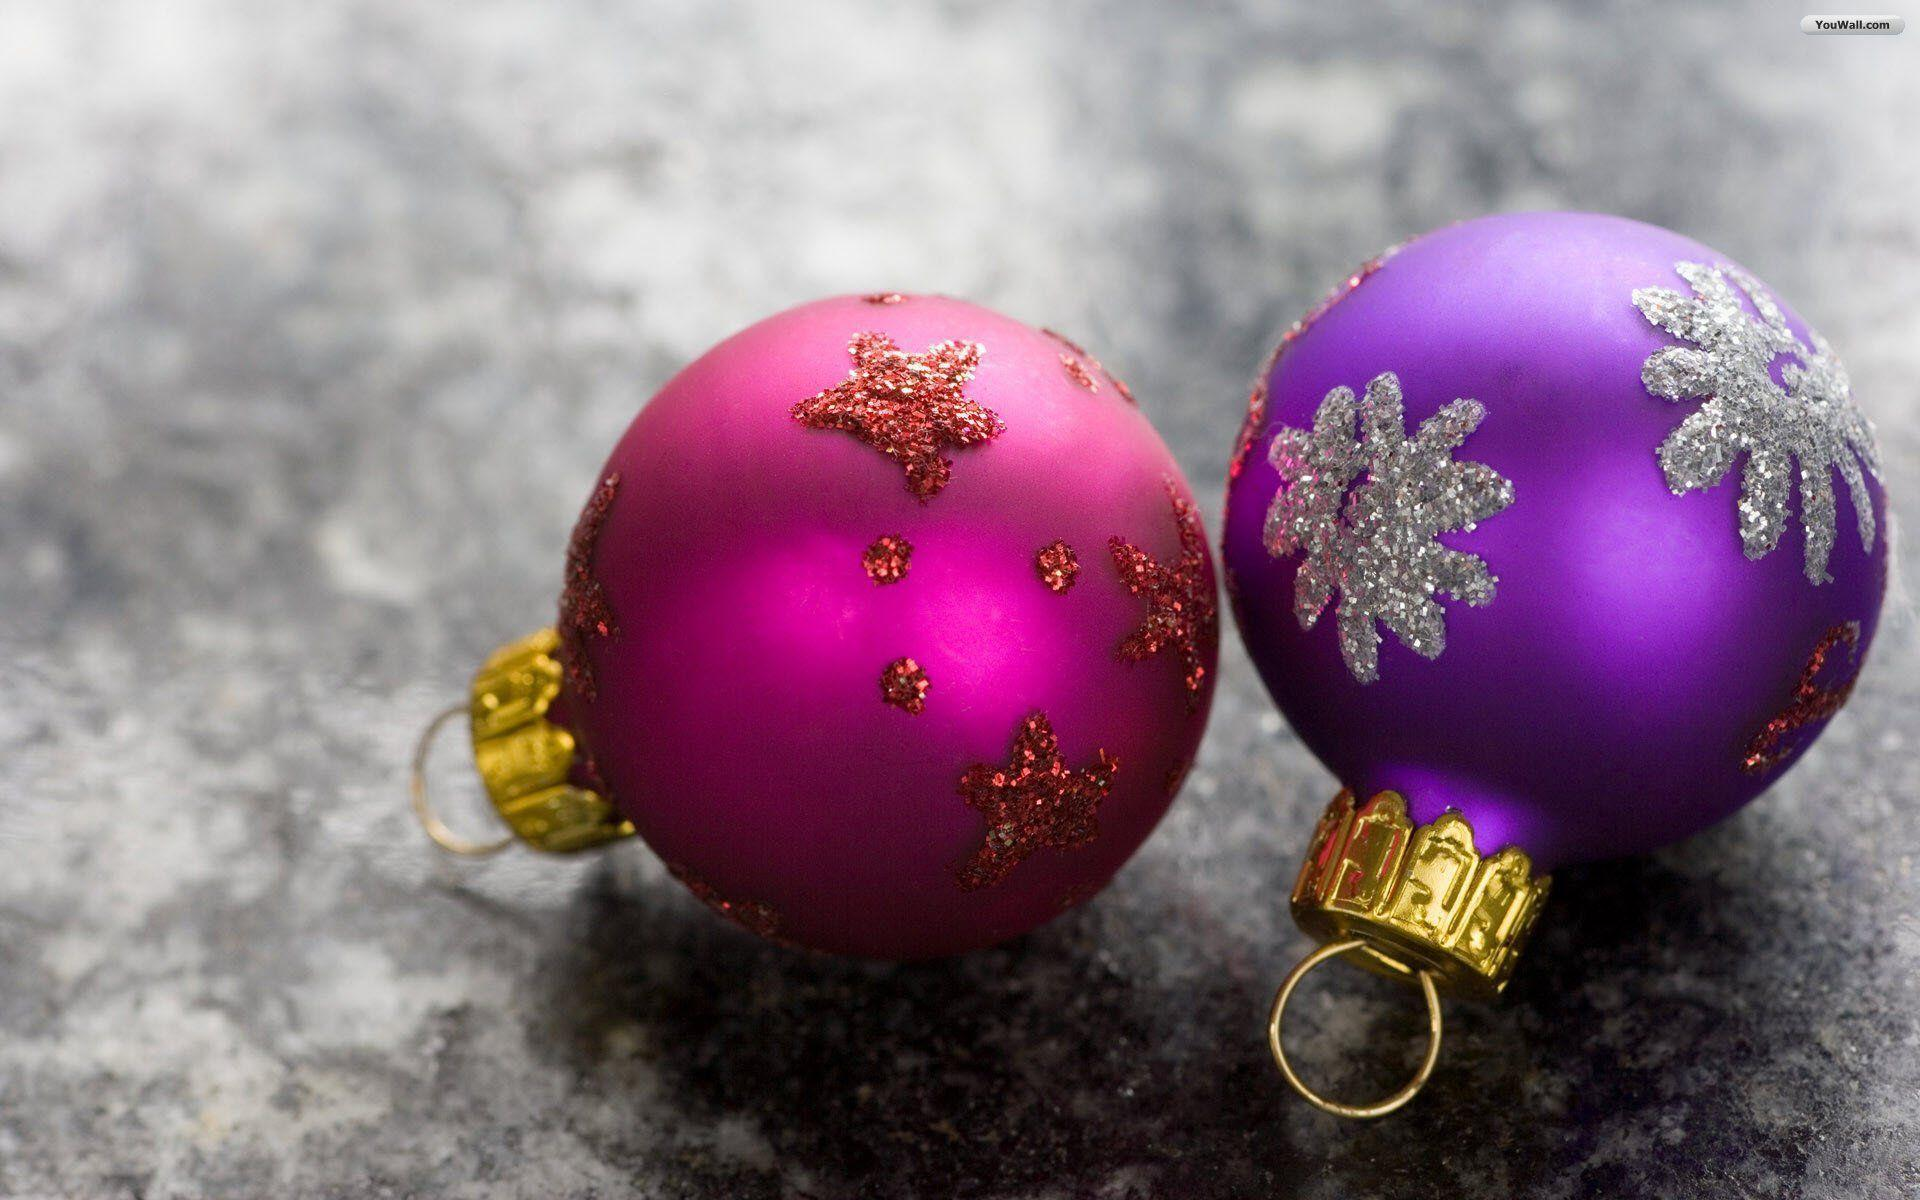 Wallpapers For > Colorful Christmas Ornaments Wallpaper